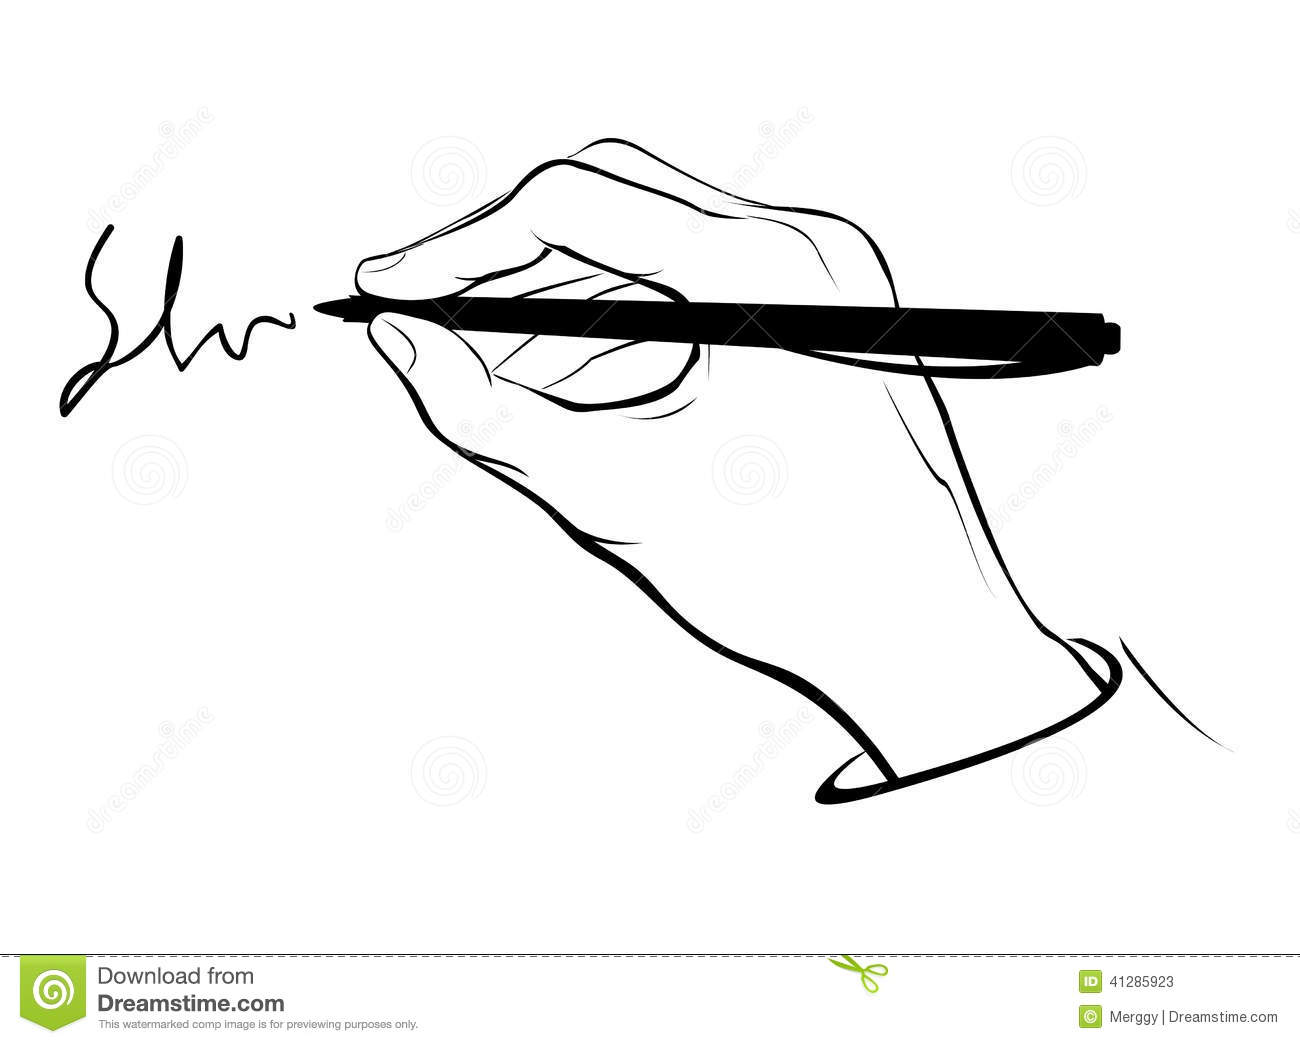 Writing hand outline stock vector. Illustration of